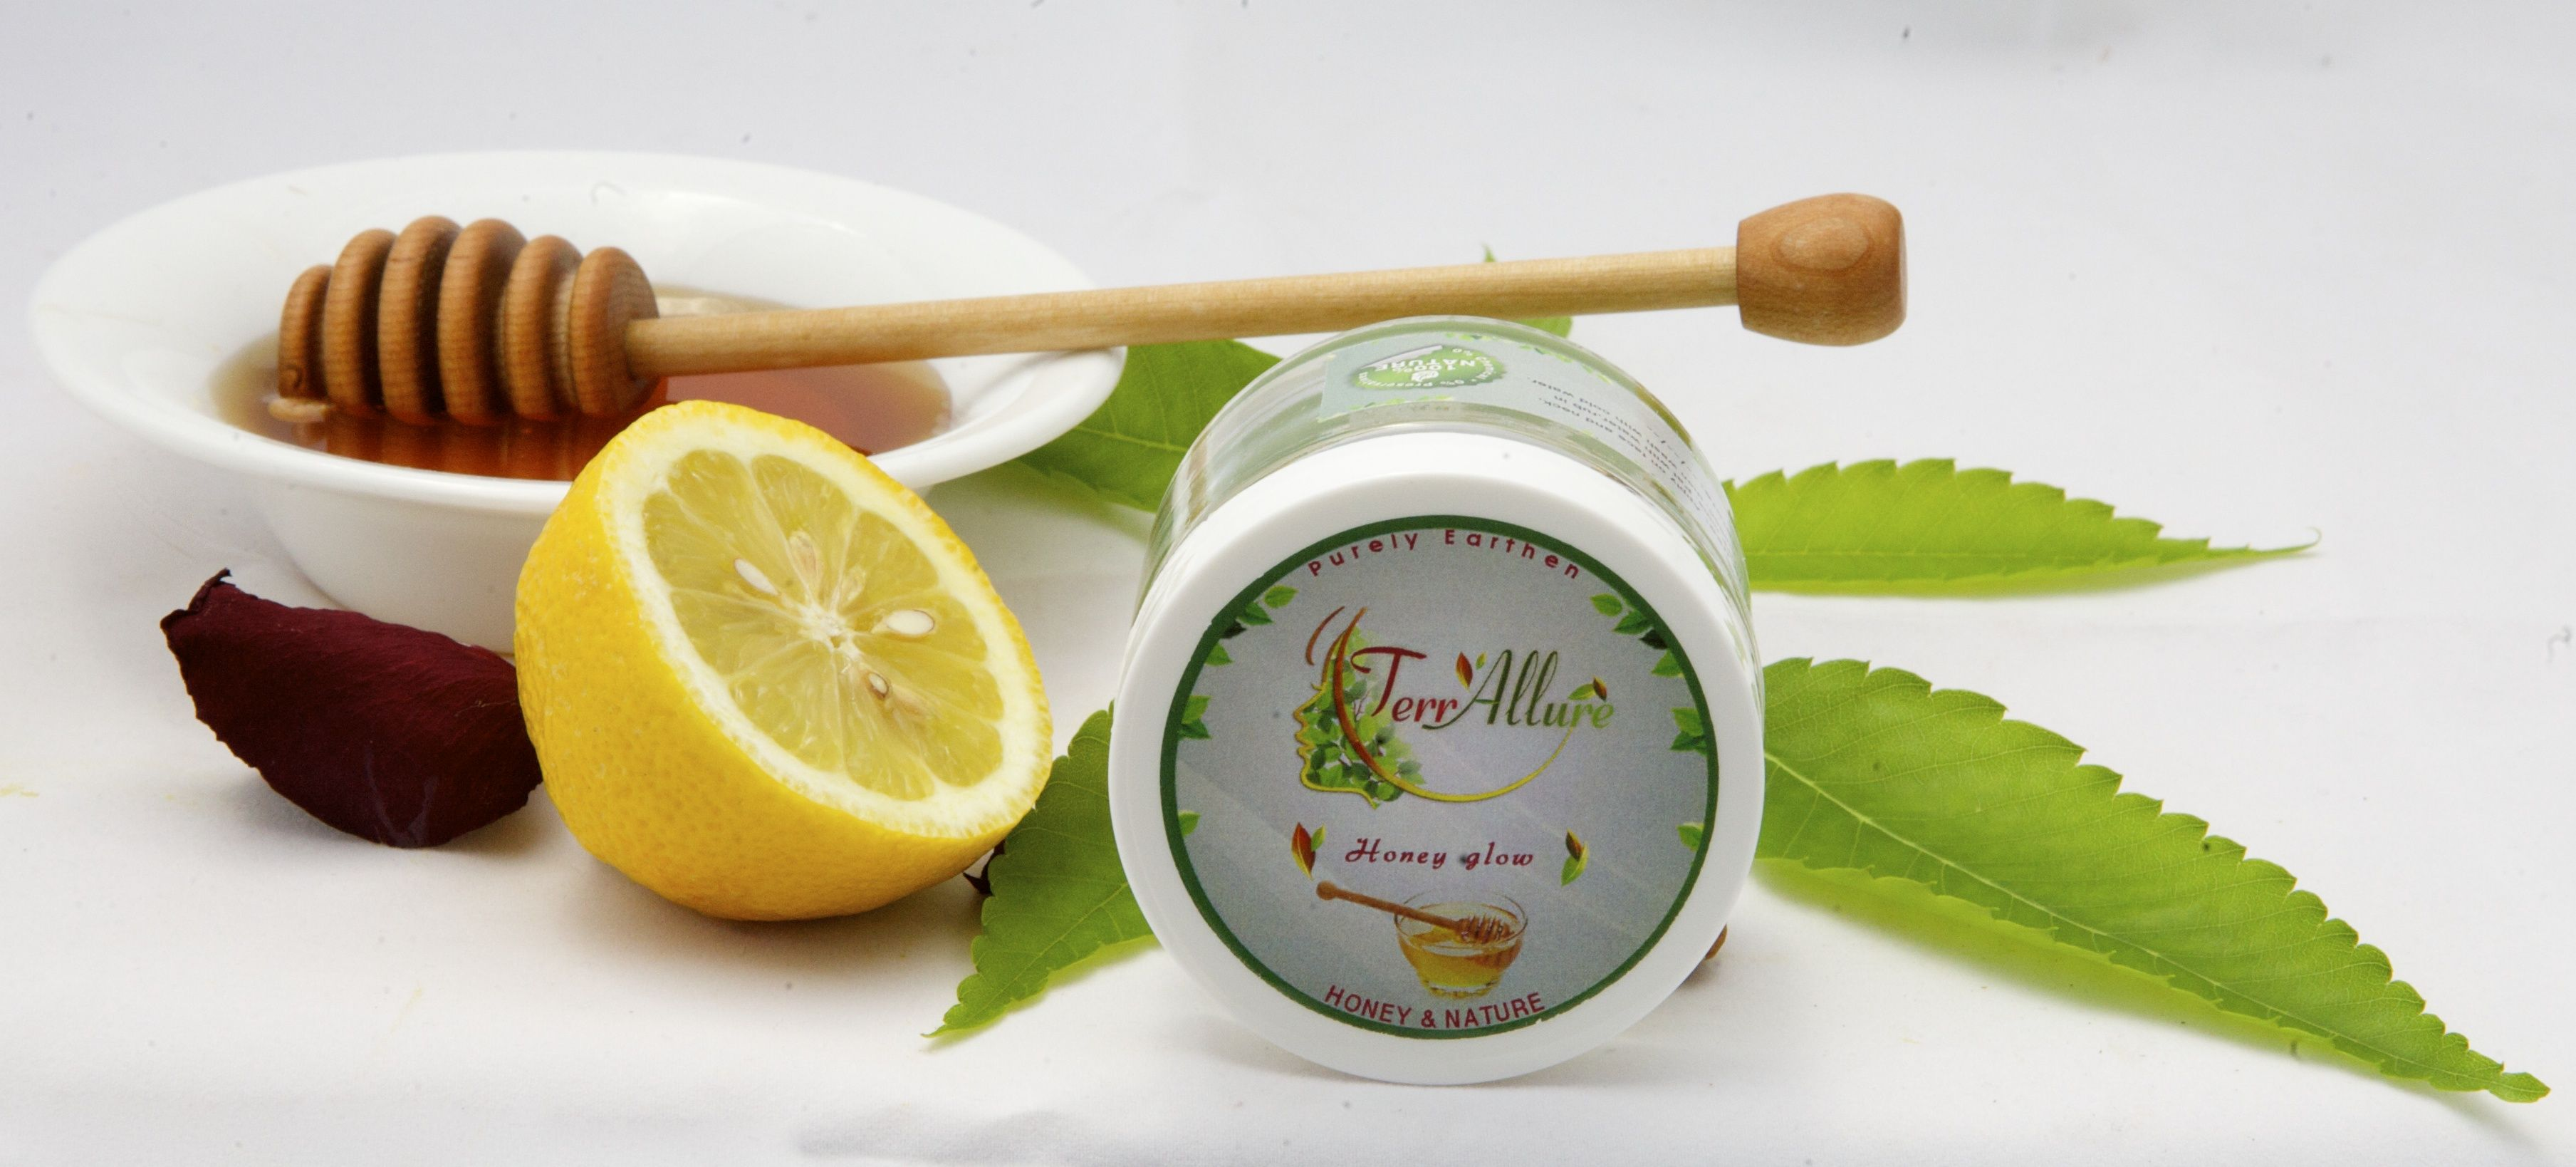 HONEY GLOW: Honey when mixed with lemon and turmeric in the honey glow pack, it gives an everlasting glow.